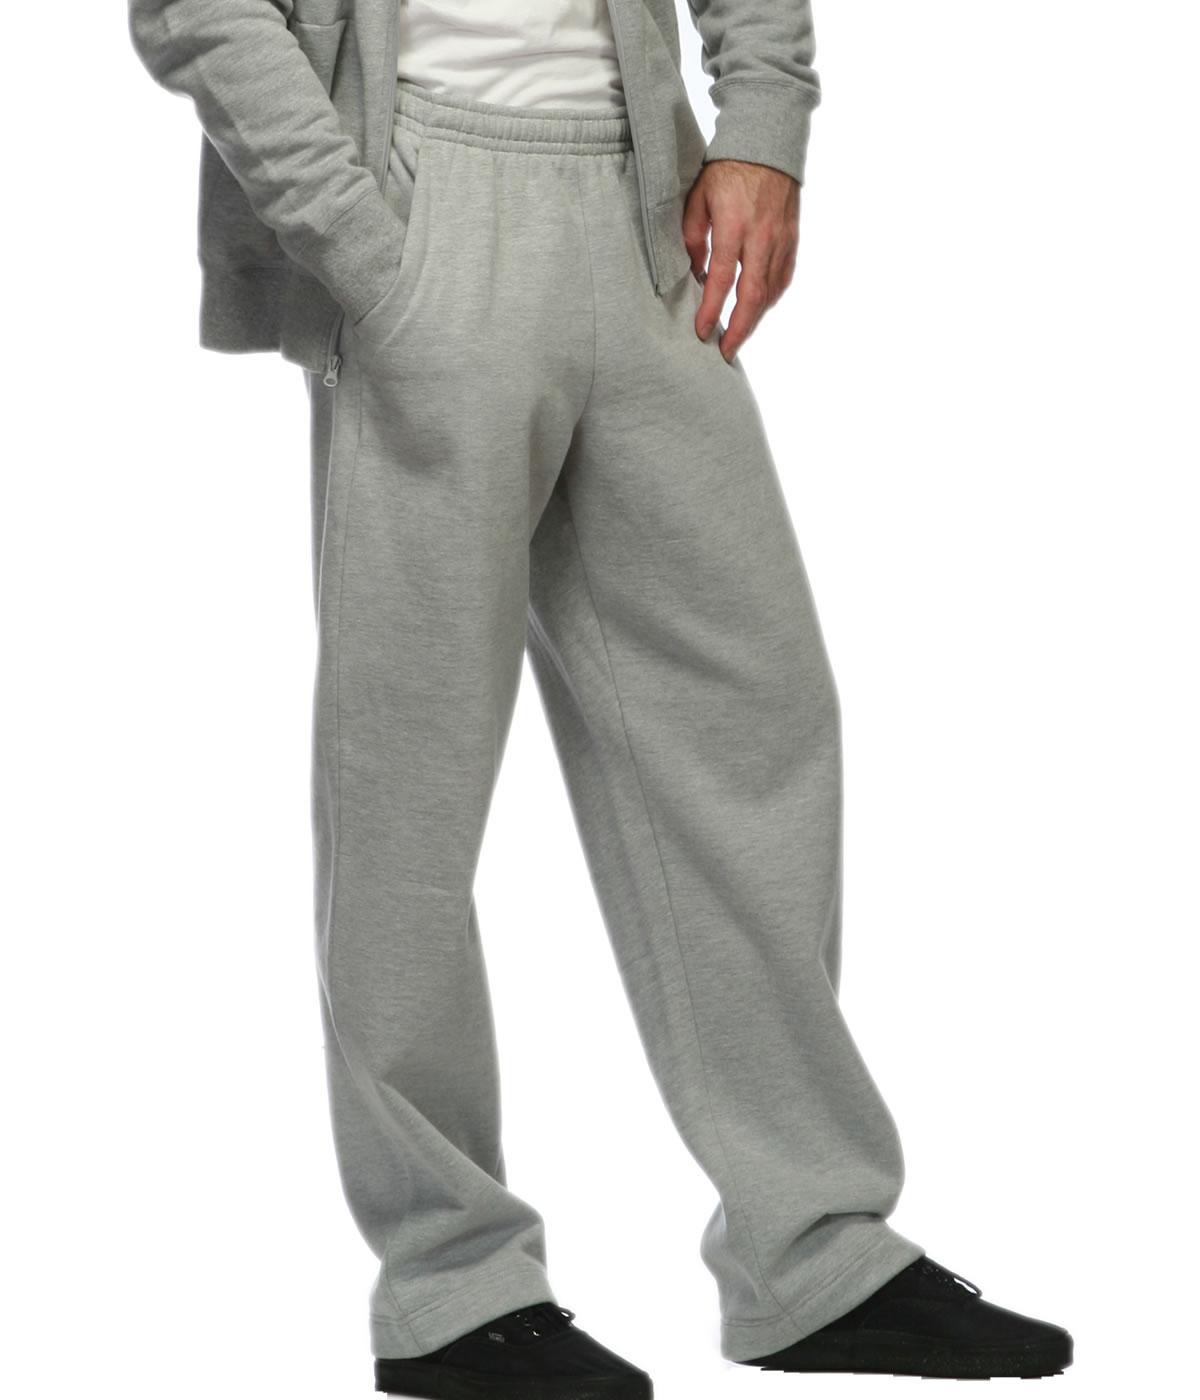 Side Pocket Sweatpants Open Bottom | 8.25 oz